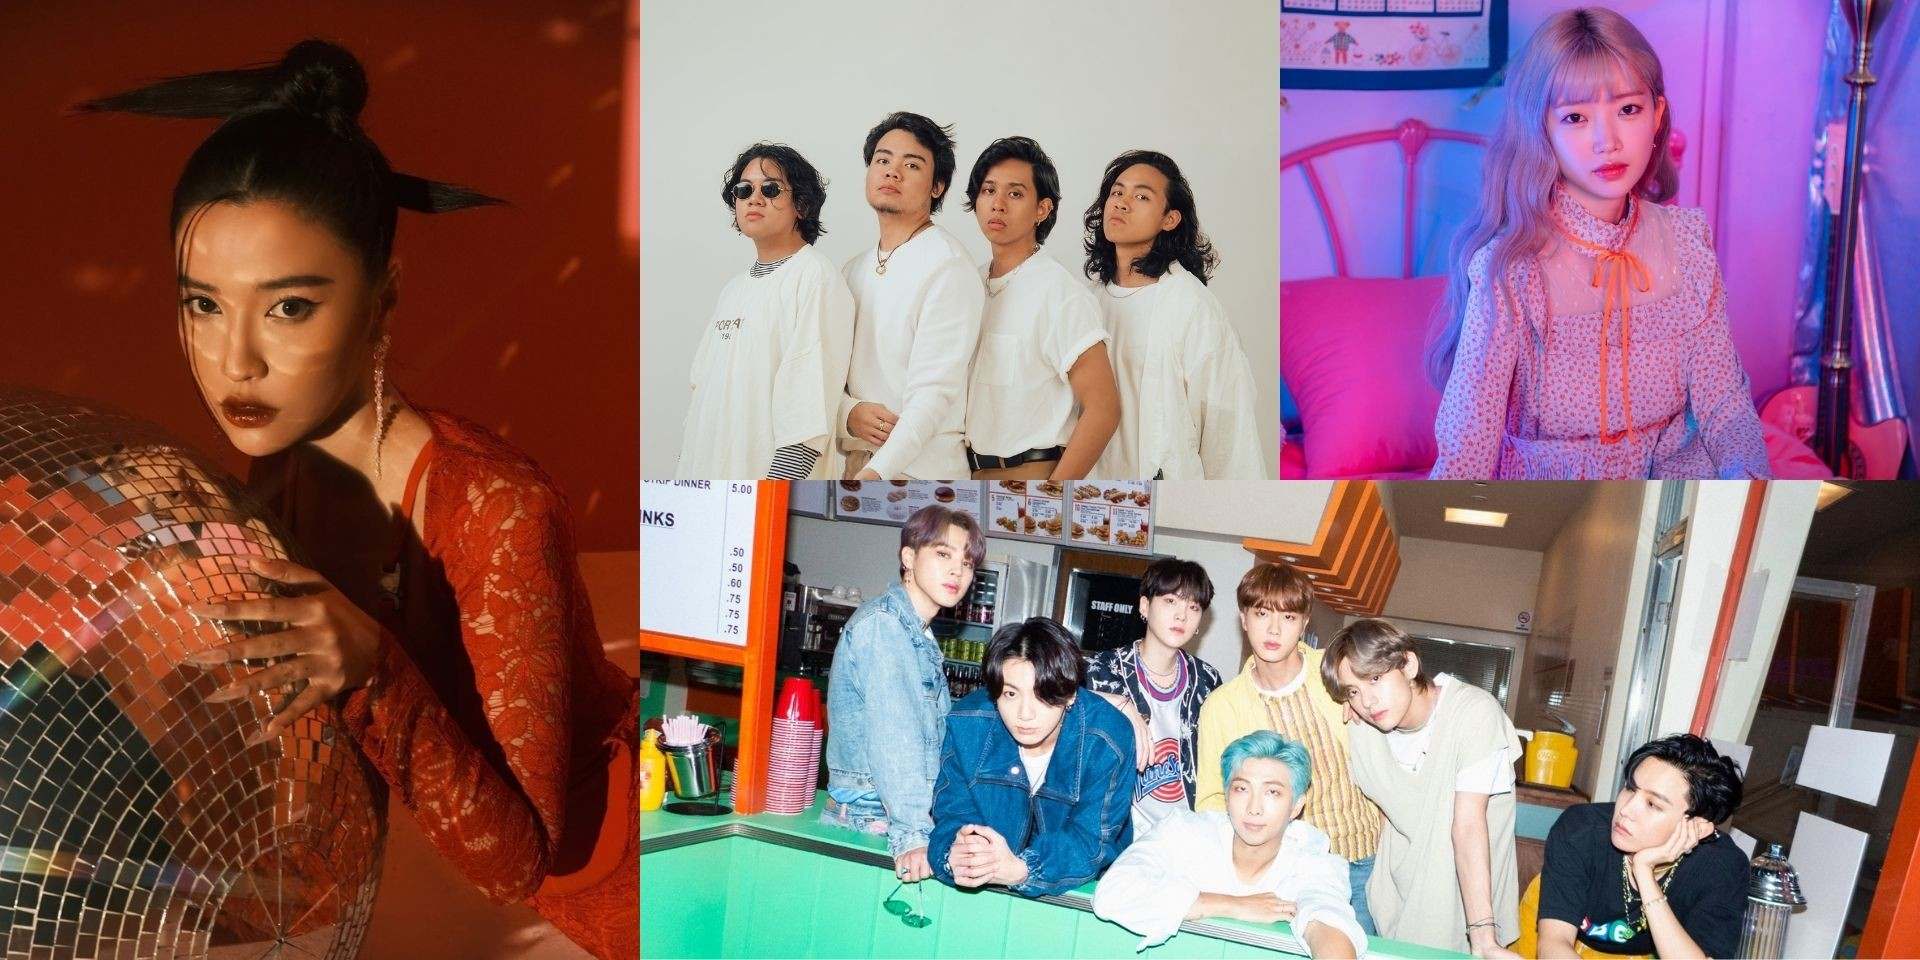 8 retro-inspired Asian songs for getting your groove on — including tracks from BTS, YUKIKA, One Click Straight, and more